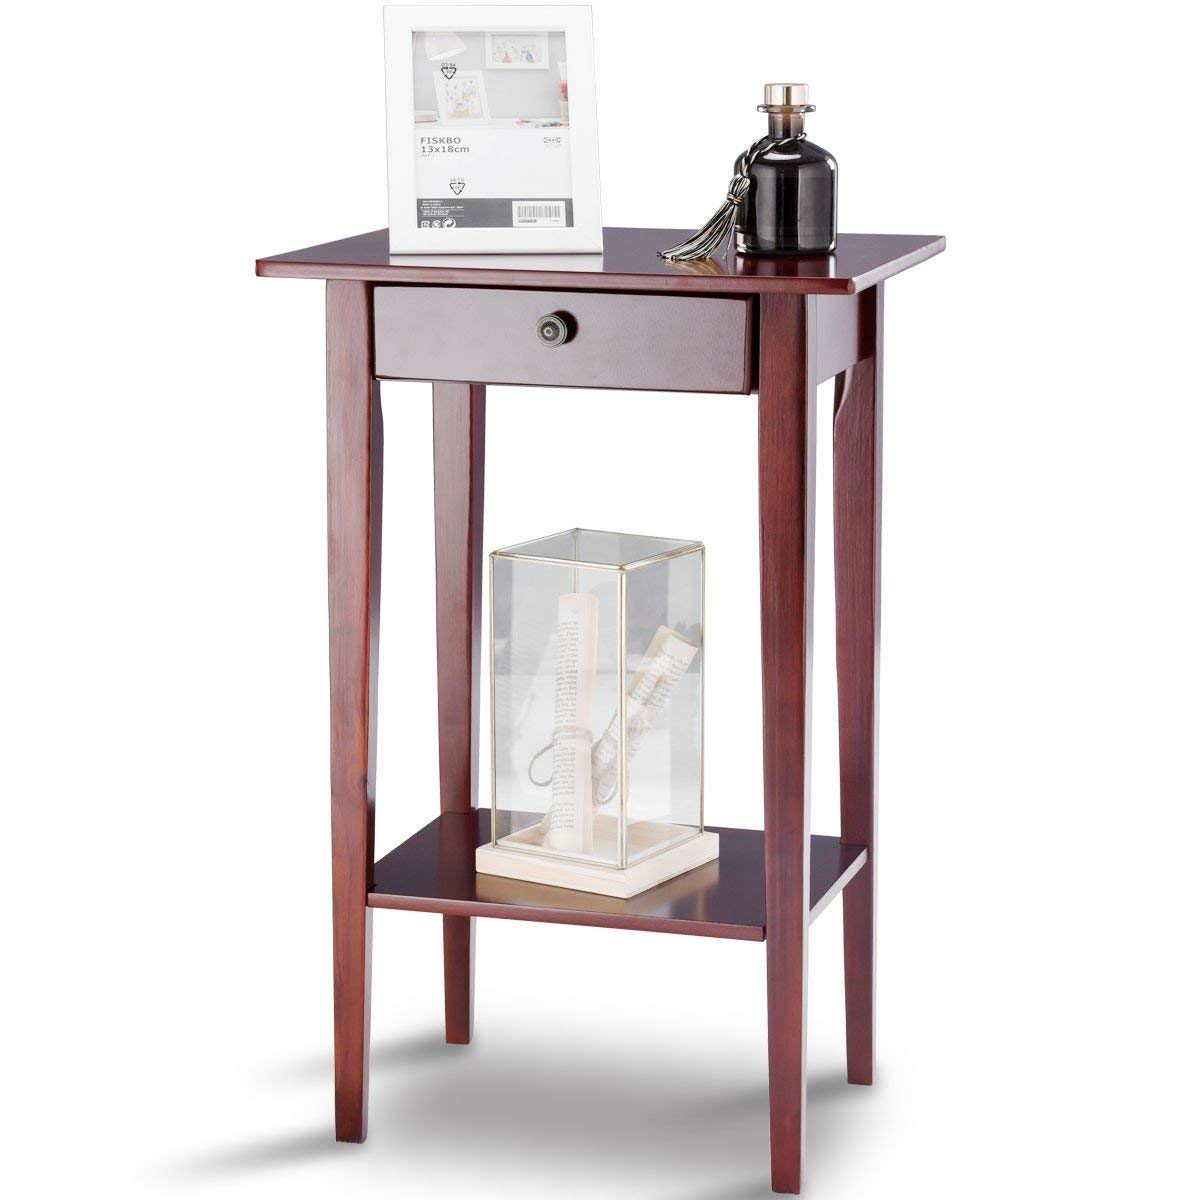 tall accent table find line metal get quotations height wood side style telephone stand vintage black lamps rustic weber top furniture brands pulaski display cabinet large crystal